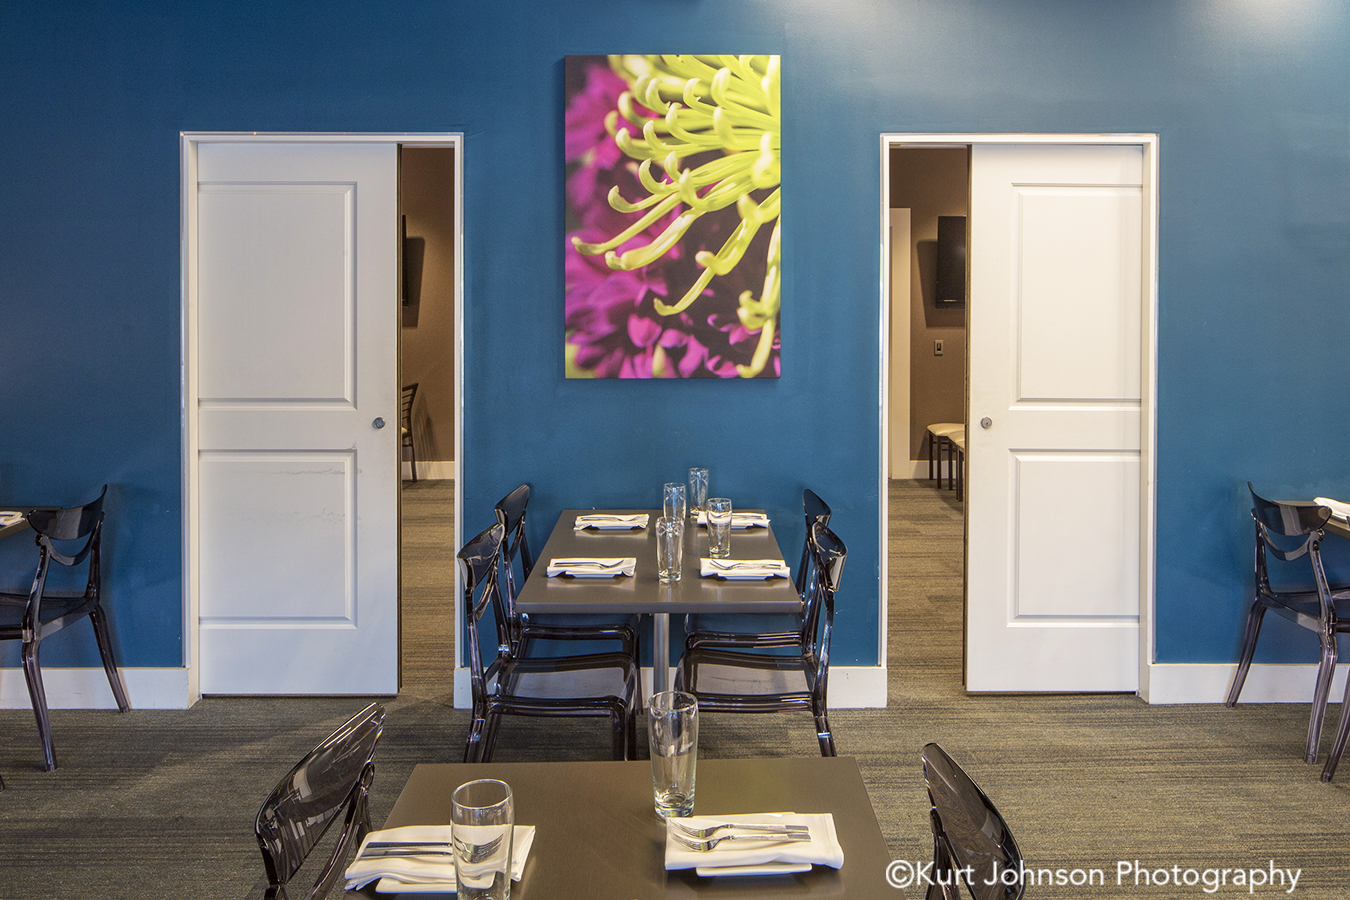 salt 88 omaha nebraska flower floral botanical restaurant installation gallery wrapped canvas acoustic panel panels